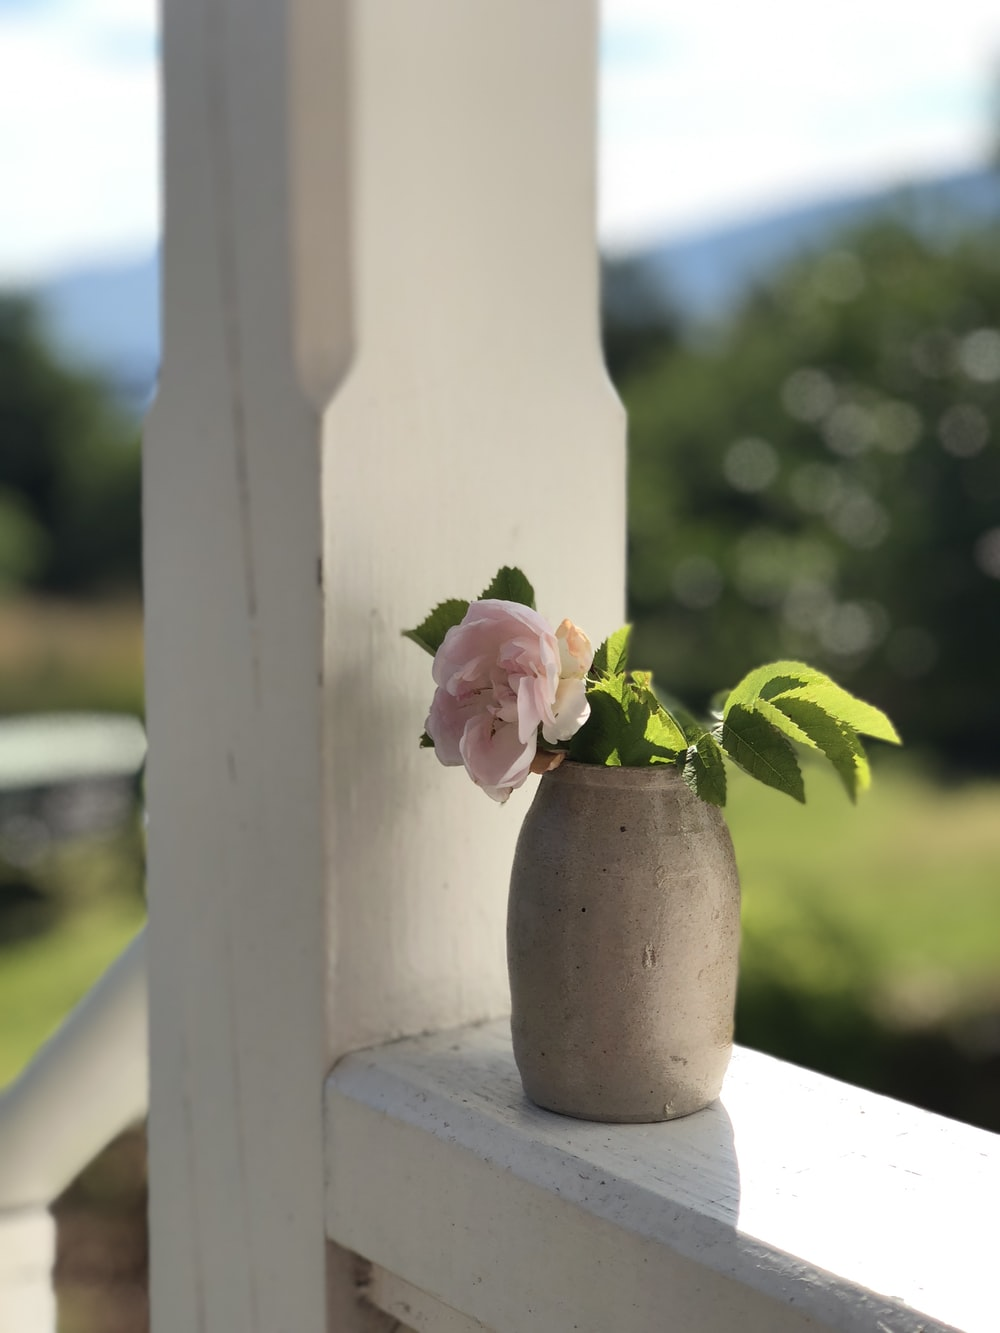 photo of pink petaled flowers with pot